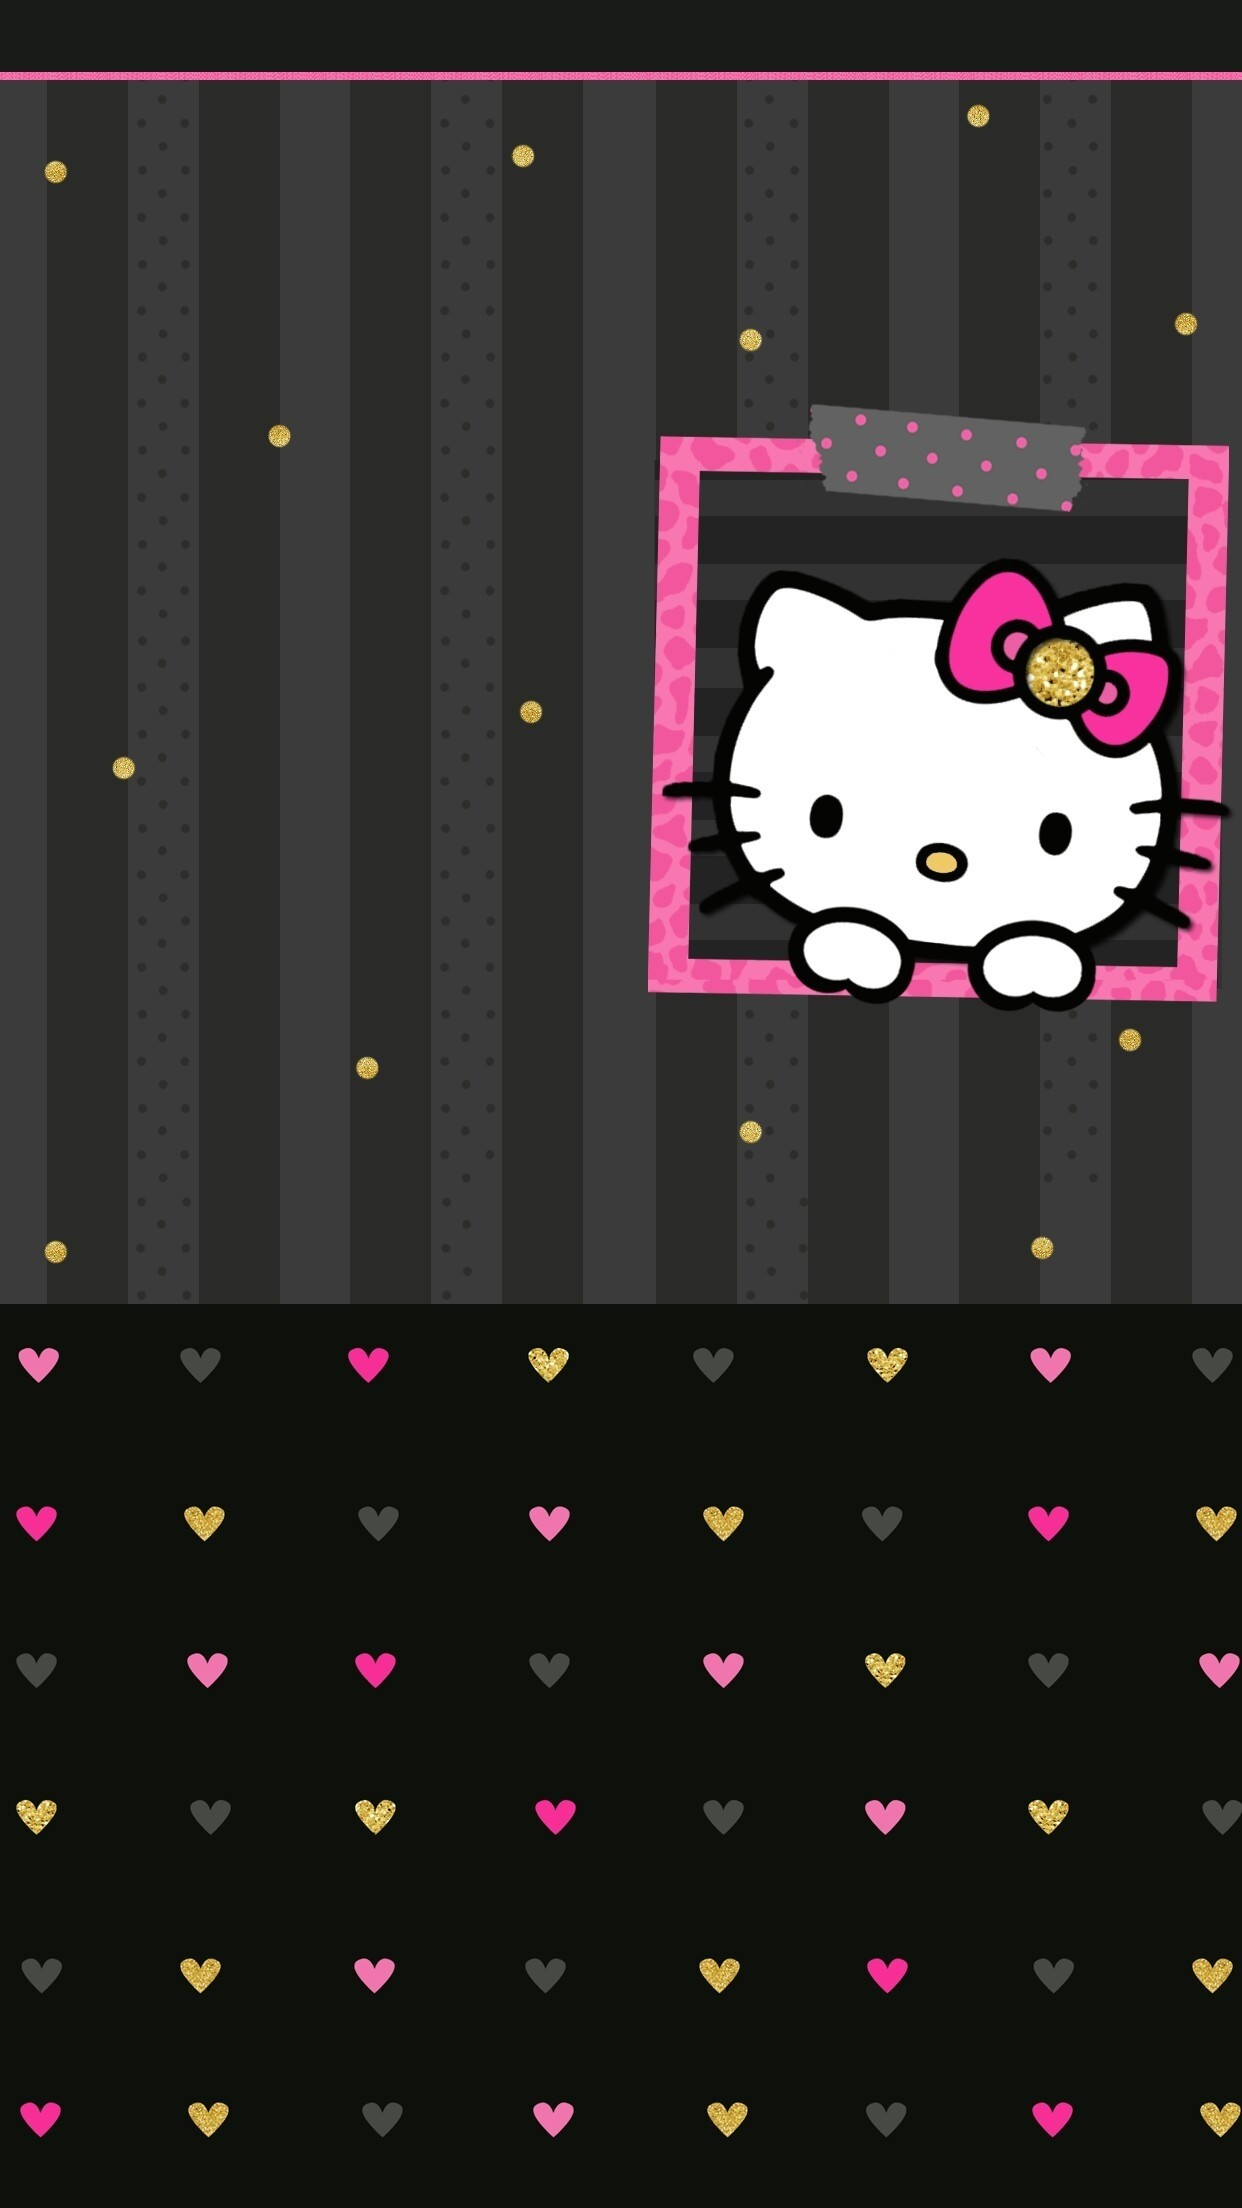 1920x1080 Hello Kitty Pink And Black Love Picture On Wallpaper 1080p HD